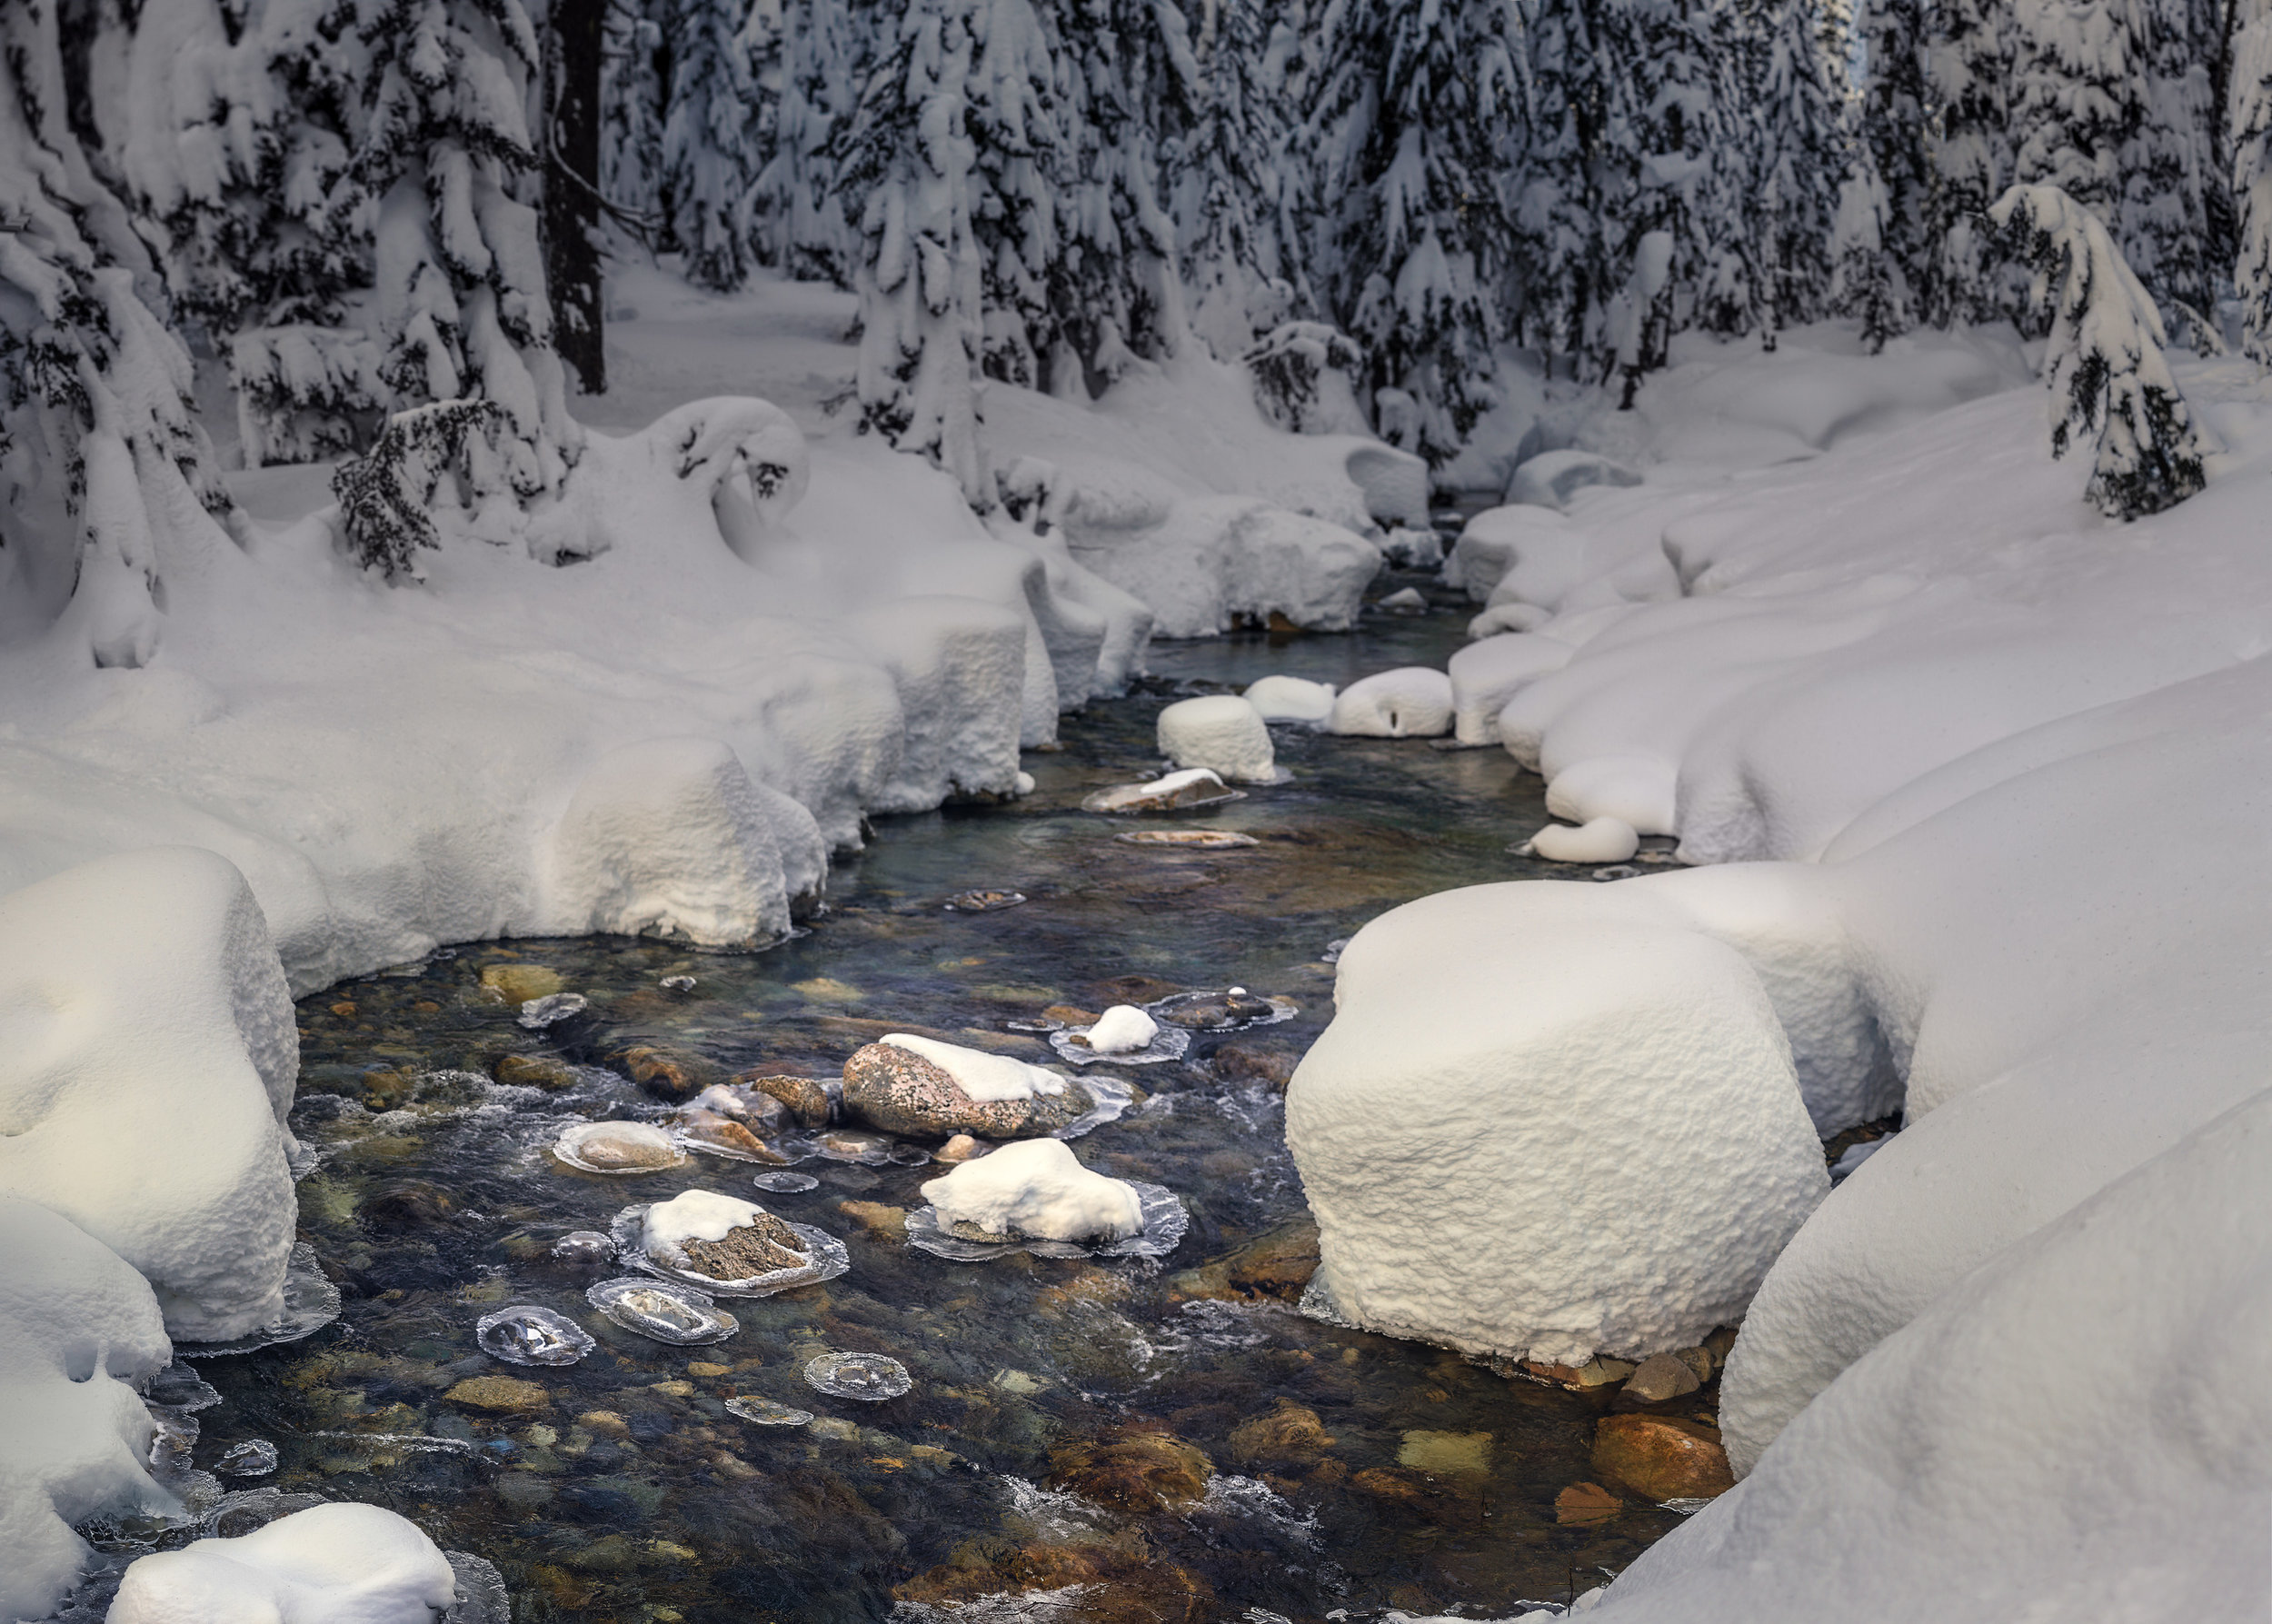 Winter's heart, fine art photograph captured in Snoqualmie,Washington during the winter. The photograph features a winter stream traveling diagonally through the images with a ray of light illuminating a narrow region of the spring. Snow covers the landscape and evergreen trees, laden with snow, rim the edges of the scene. The photograph is cool with a hint of warm tones where the sunlight touches the stream. It was captured as a bokeh panoramic, the result leaves a very painterly feeling to image.